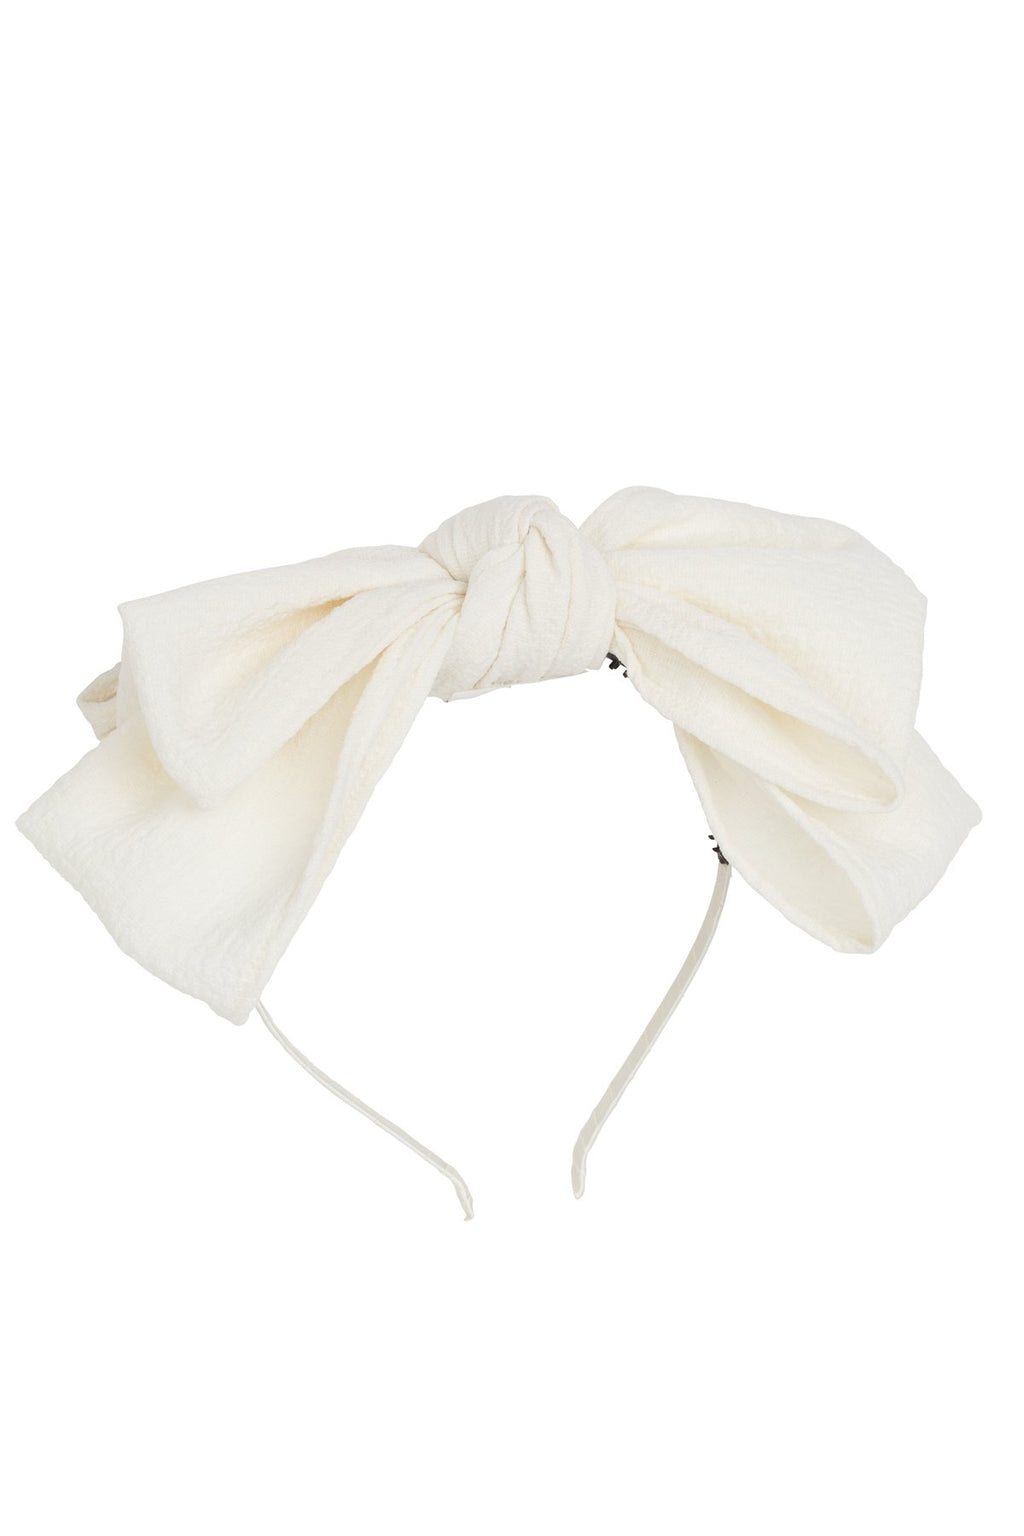 Floppy Muslin Headband - Off White - PROJECT 6, modest fashion